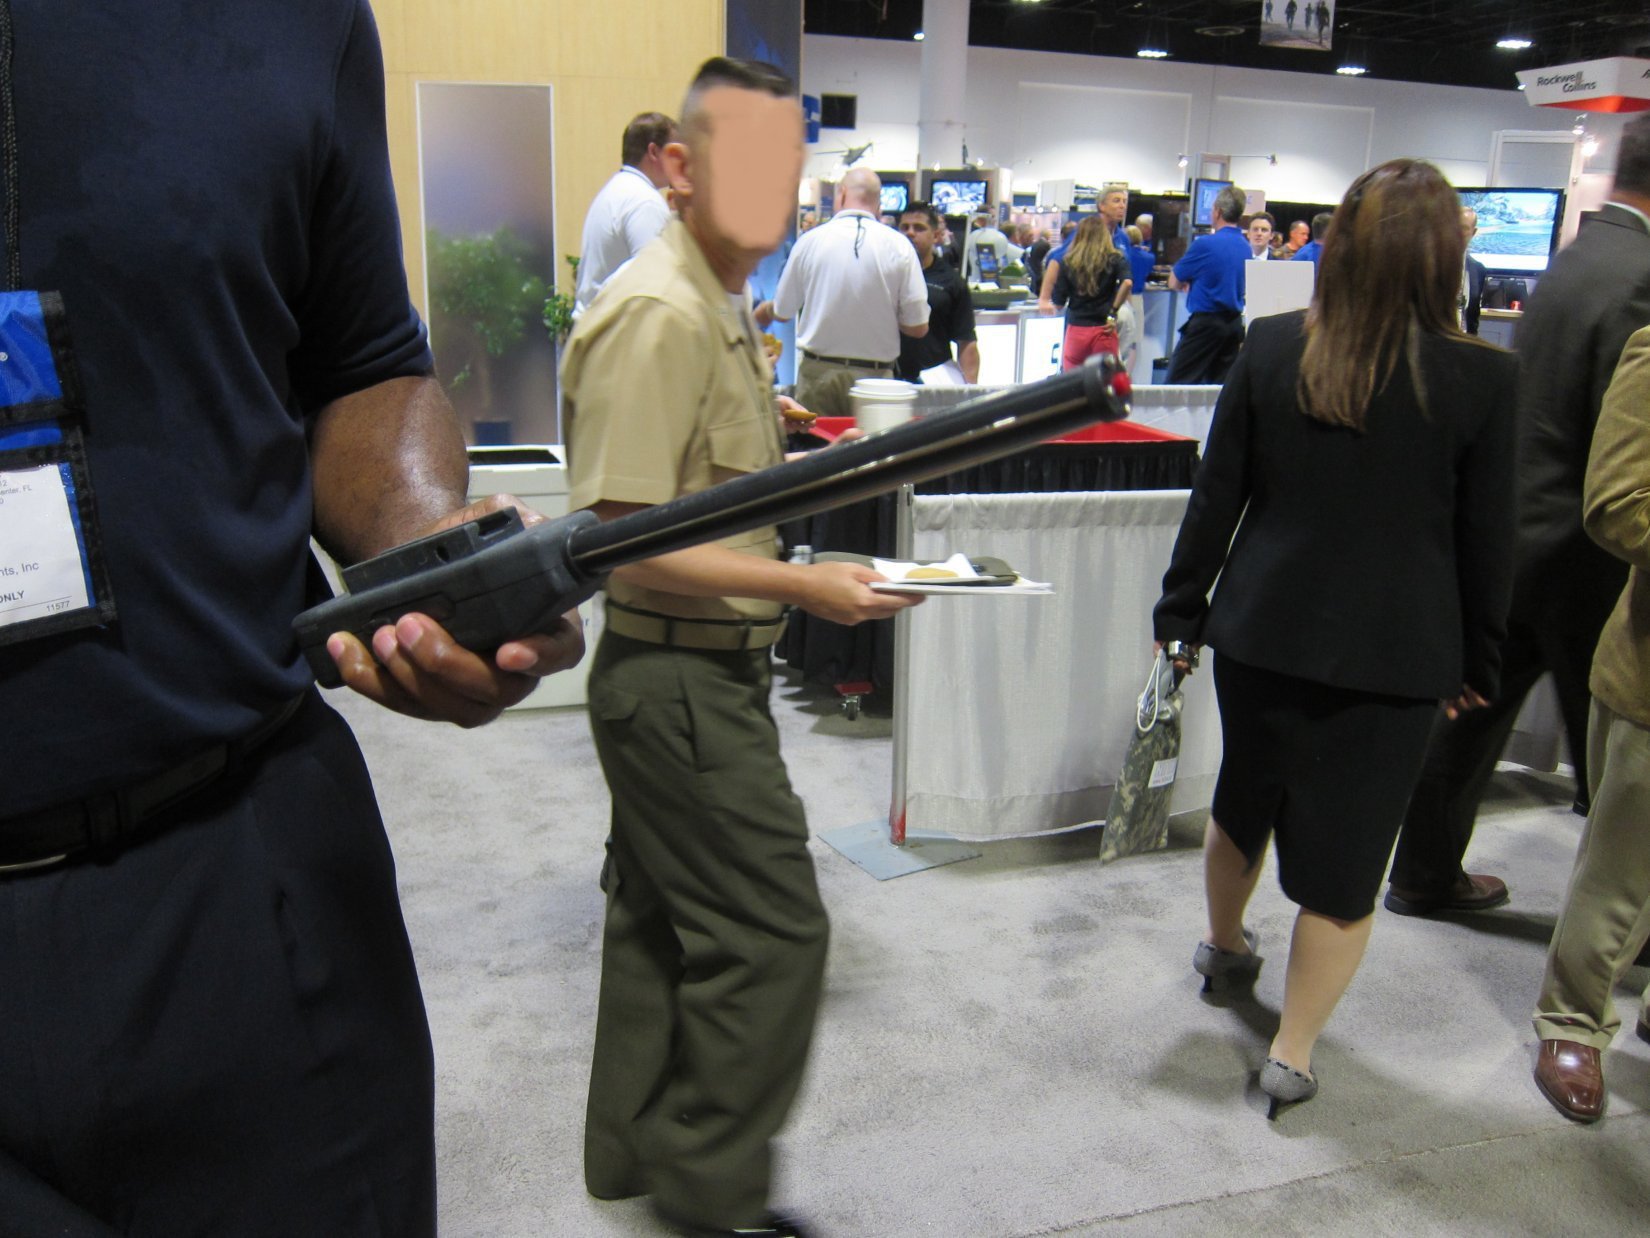 Stunning Developments BattleProd Combat Tactical Stun Baton Donovan Hunter NDIA SOFIC 2012 DefenseReview.com DR 3 Stunning Developments BattleProd Combat/Tactical Stun Baton: 3 5 Million Volt Tactical Cattle Prod for Instant Compliance in Urban Warfare Operations (Video!)